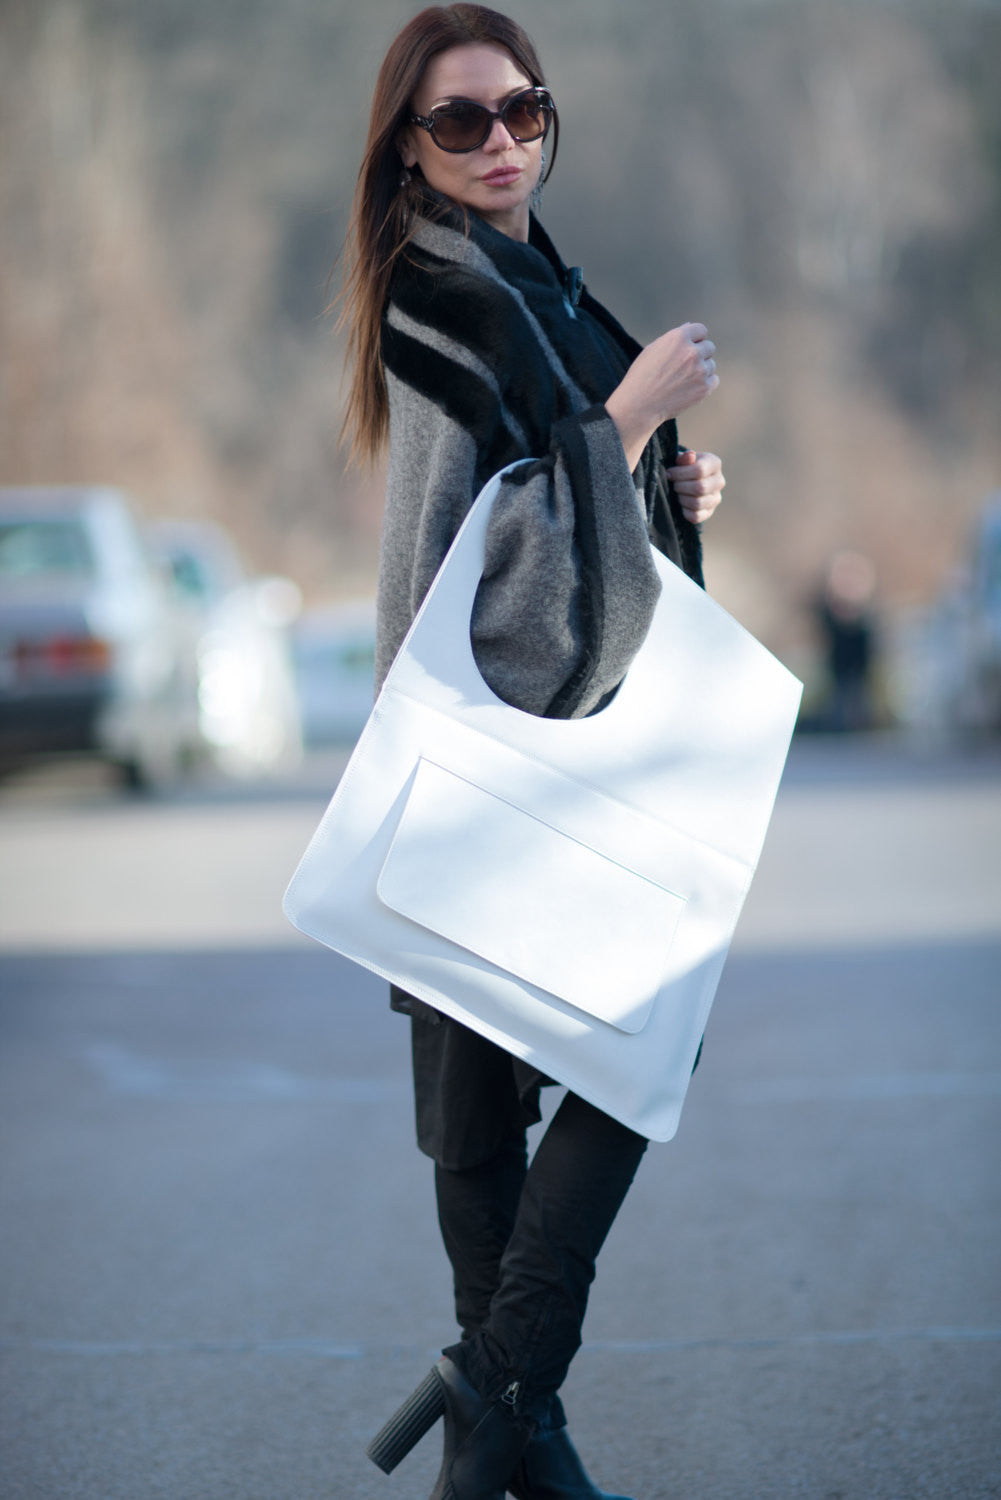 Leather Shoulder Bag, White Leather Tote, Leather Satchel